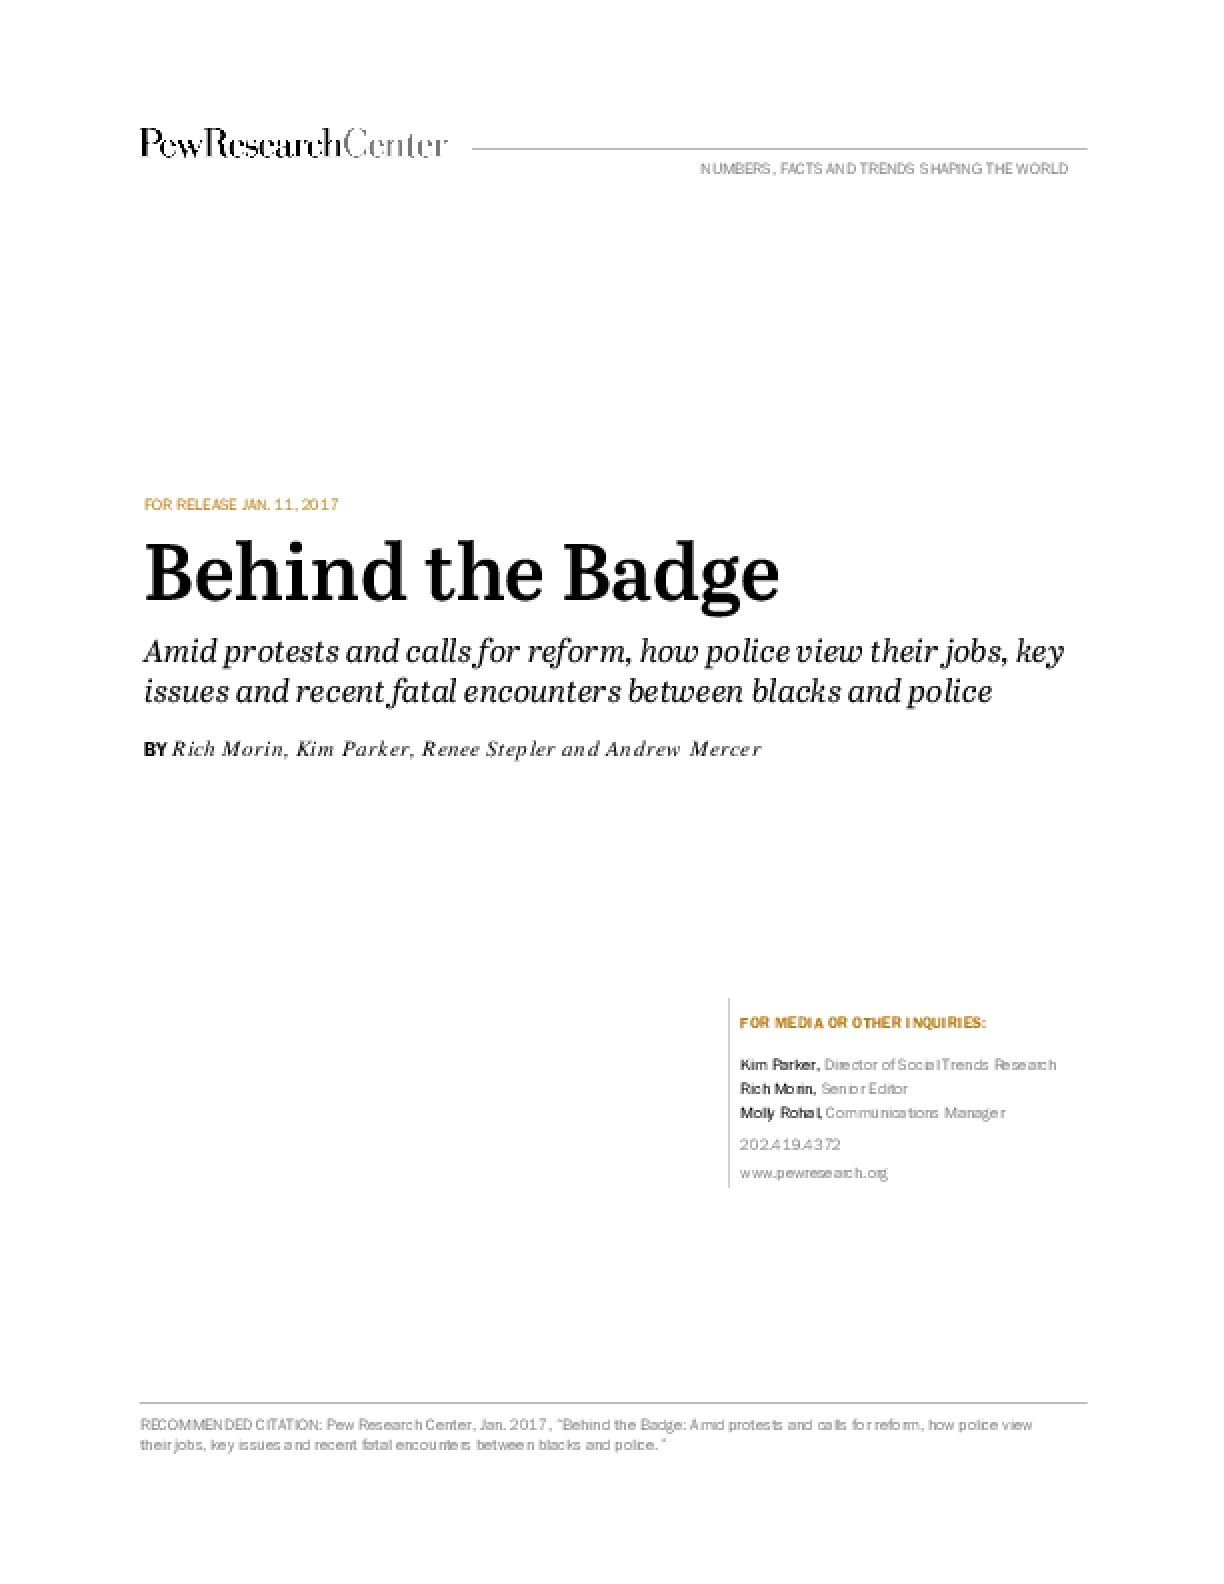 Behind the Badge: Amid Protests and Calls for Reform, How Police View Their Jobs, Key Issues and Recent Fatal Encounters Between Blacks and Police